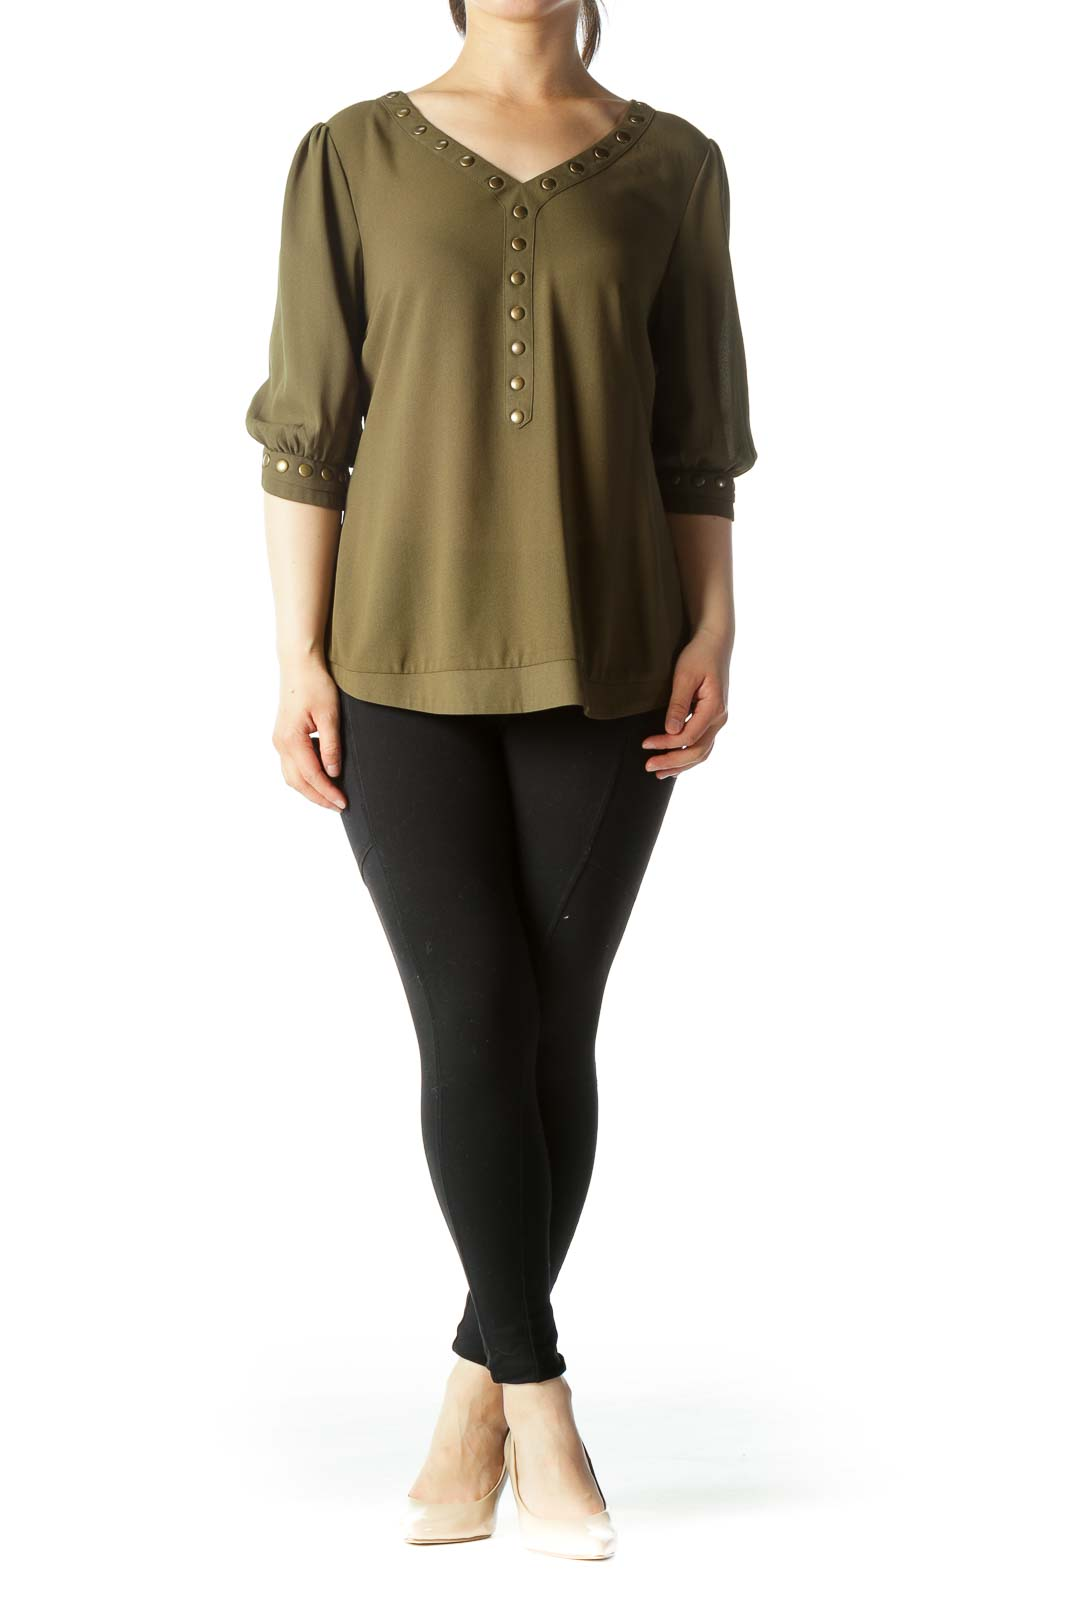 Olive Green V-Neck Studded 3/4-Sleeve Stretch Blouse